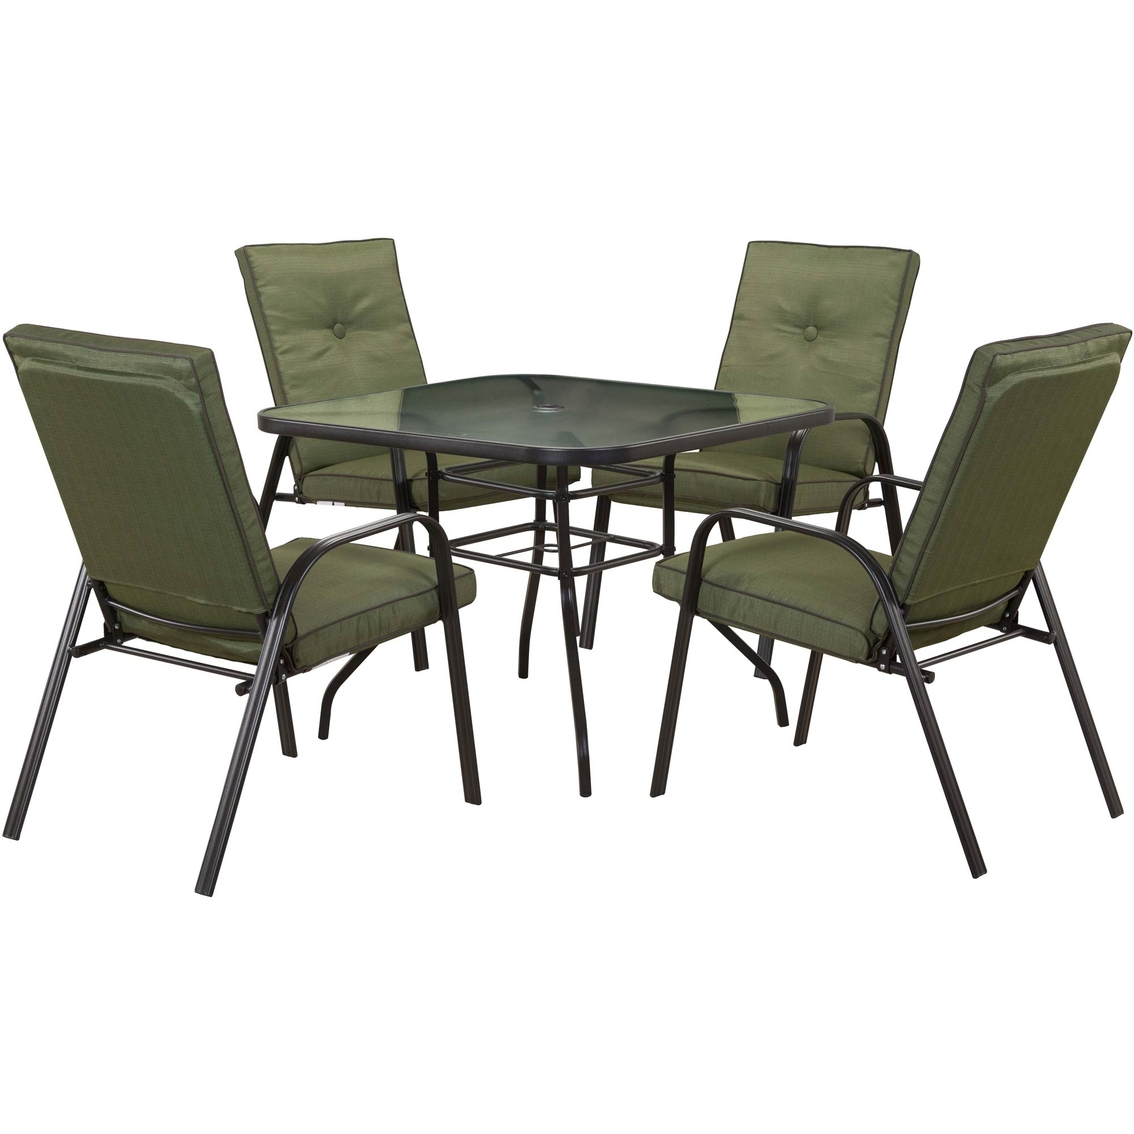 Courtyard Creations Patio Furniture Target - Courtyard Creations Outdoor Furniture - Efurnitures